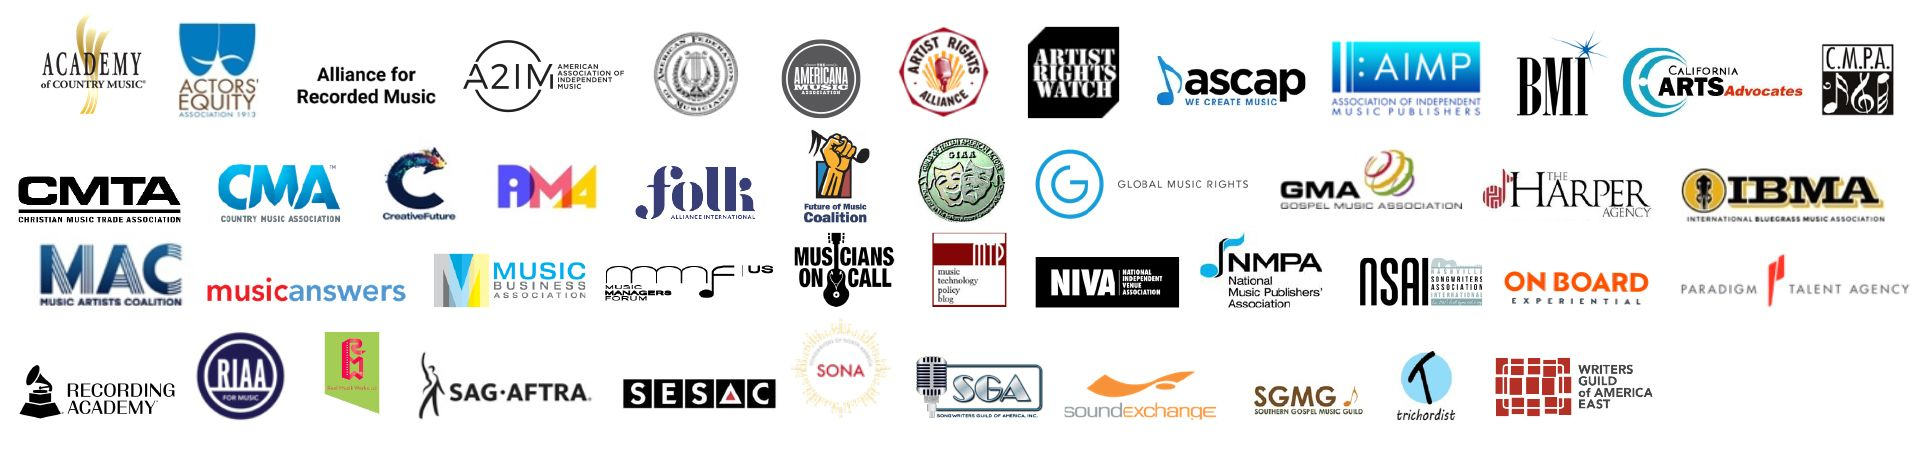 logos for music organizations